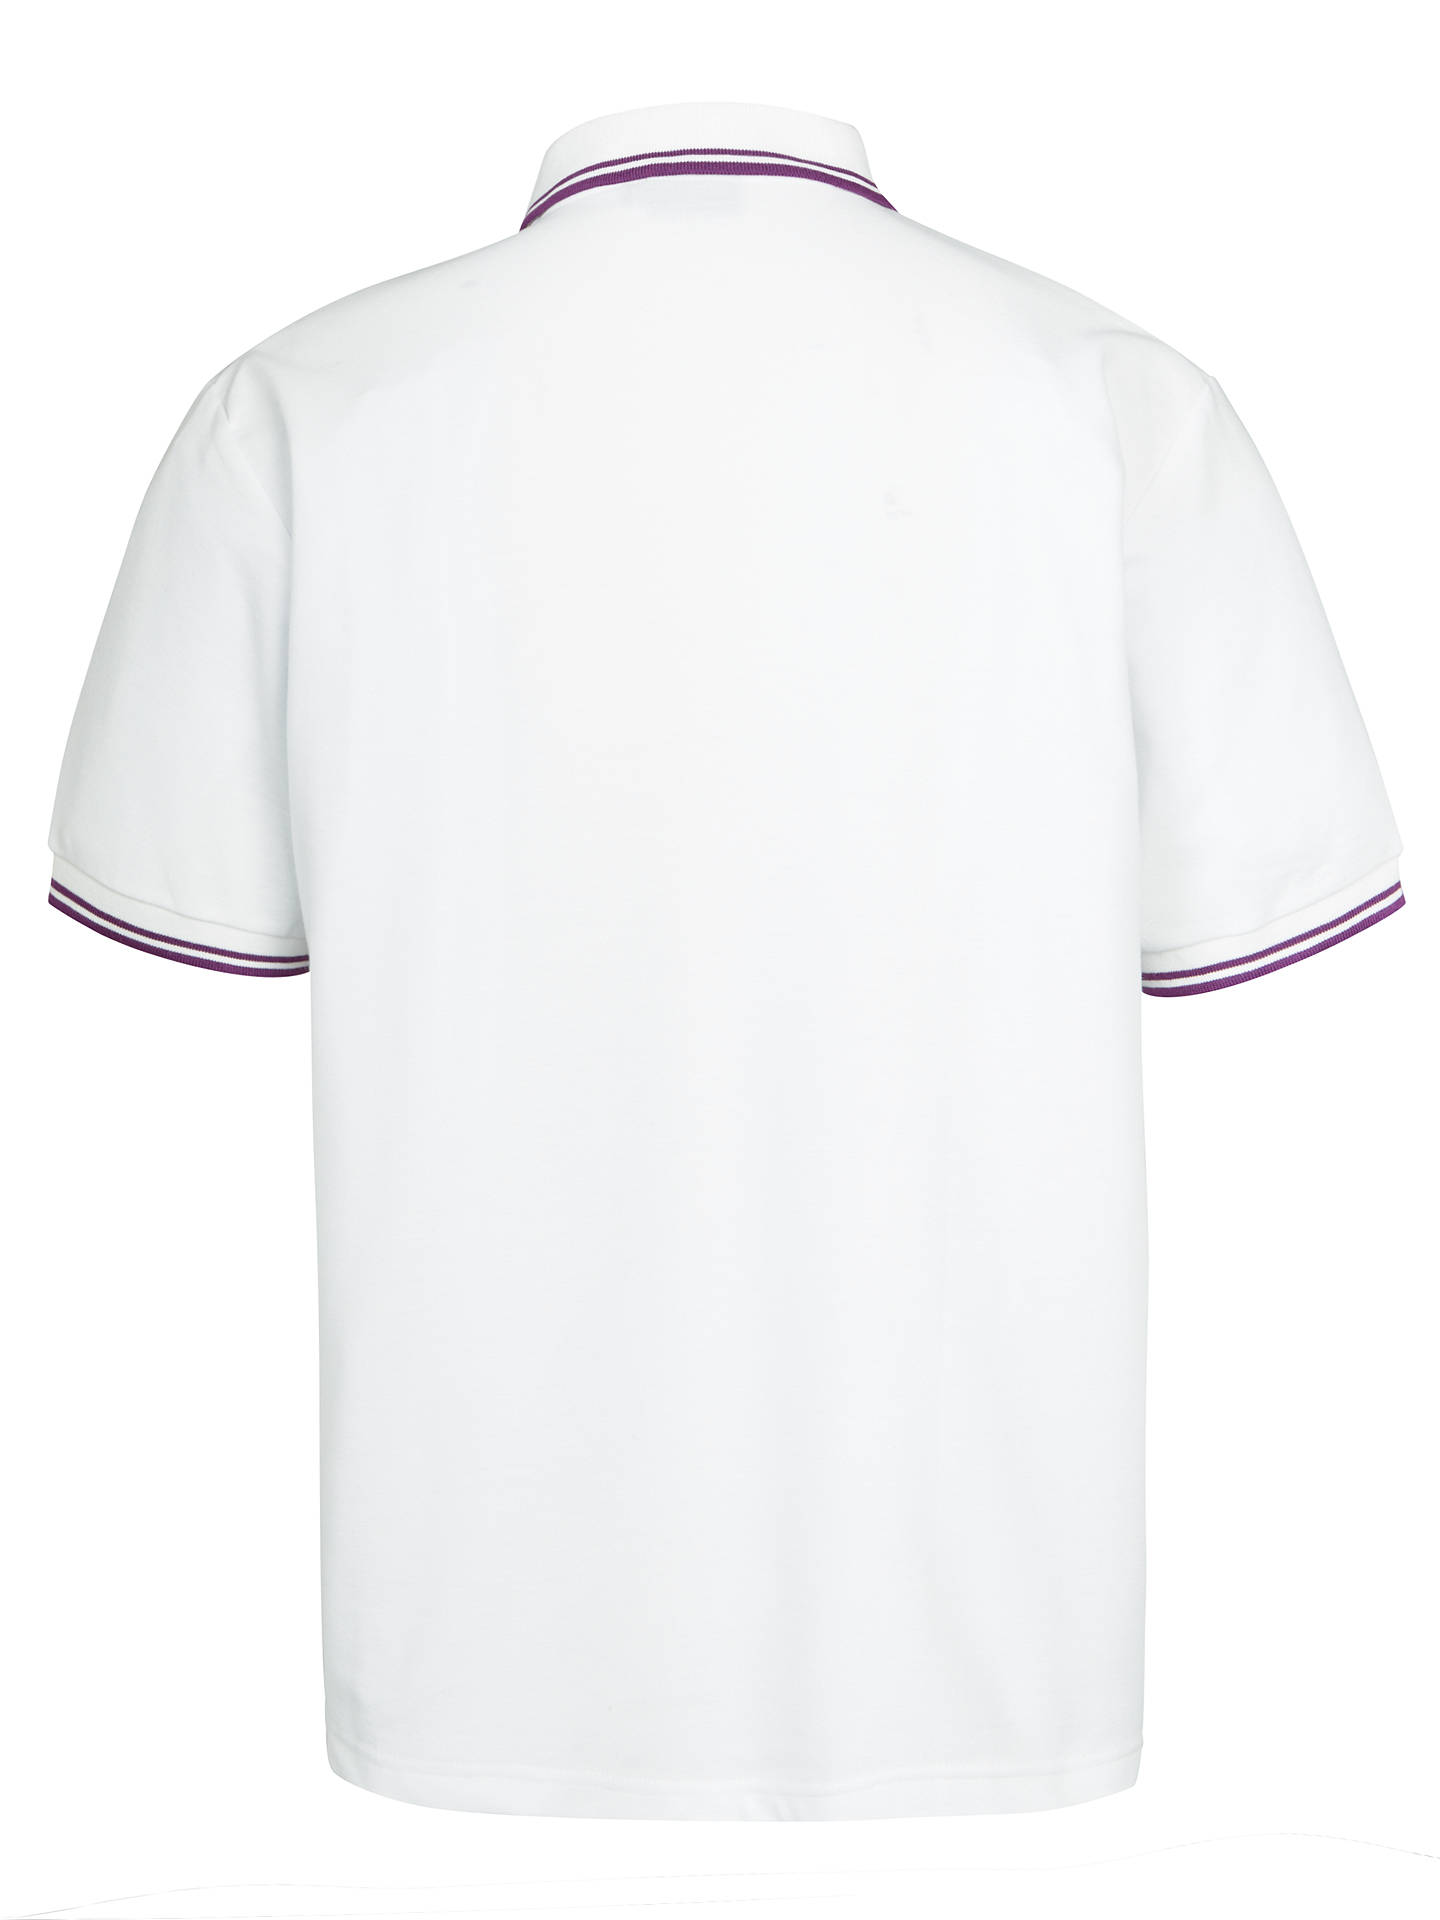 "Buy St John's College Bute House Unisex Polo Shirt, White, Chest 34"" Online at johnlewis.com"